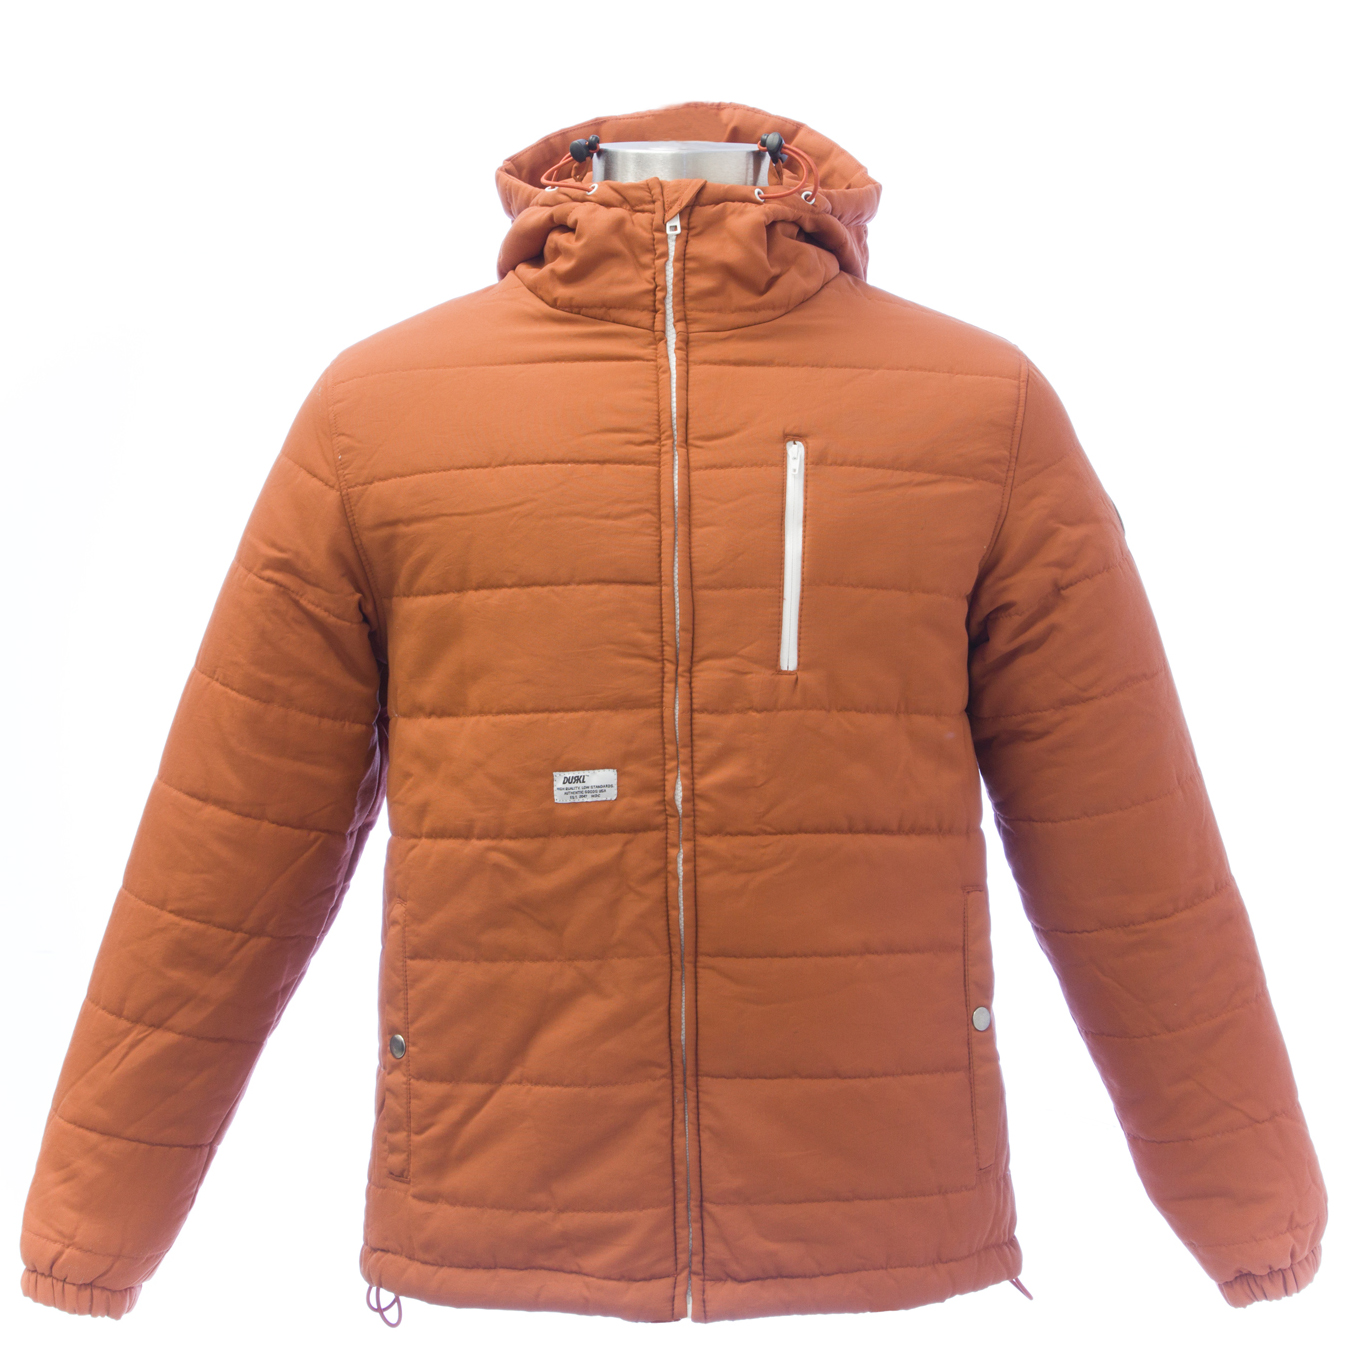 Durkl Men's Andes Down Jacket